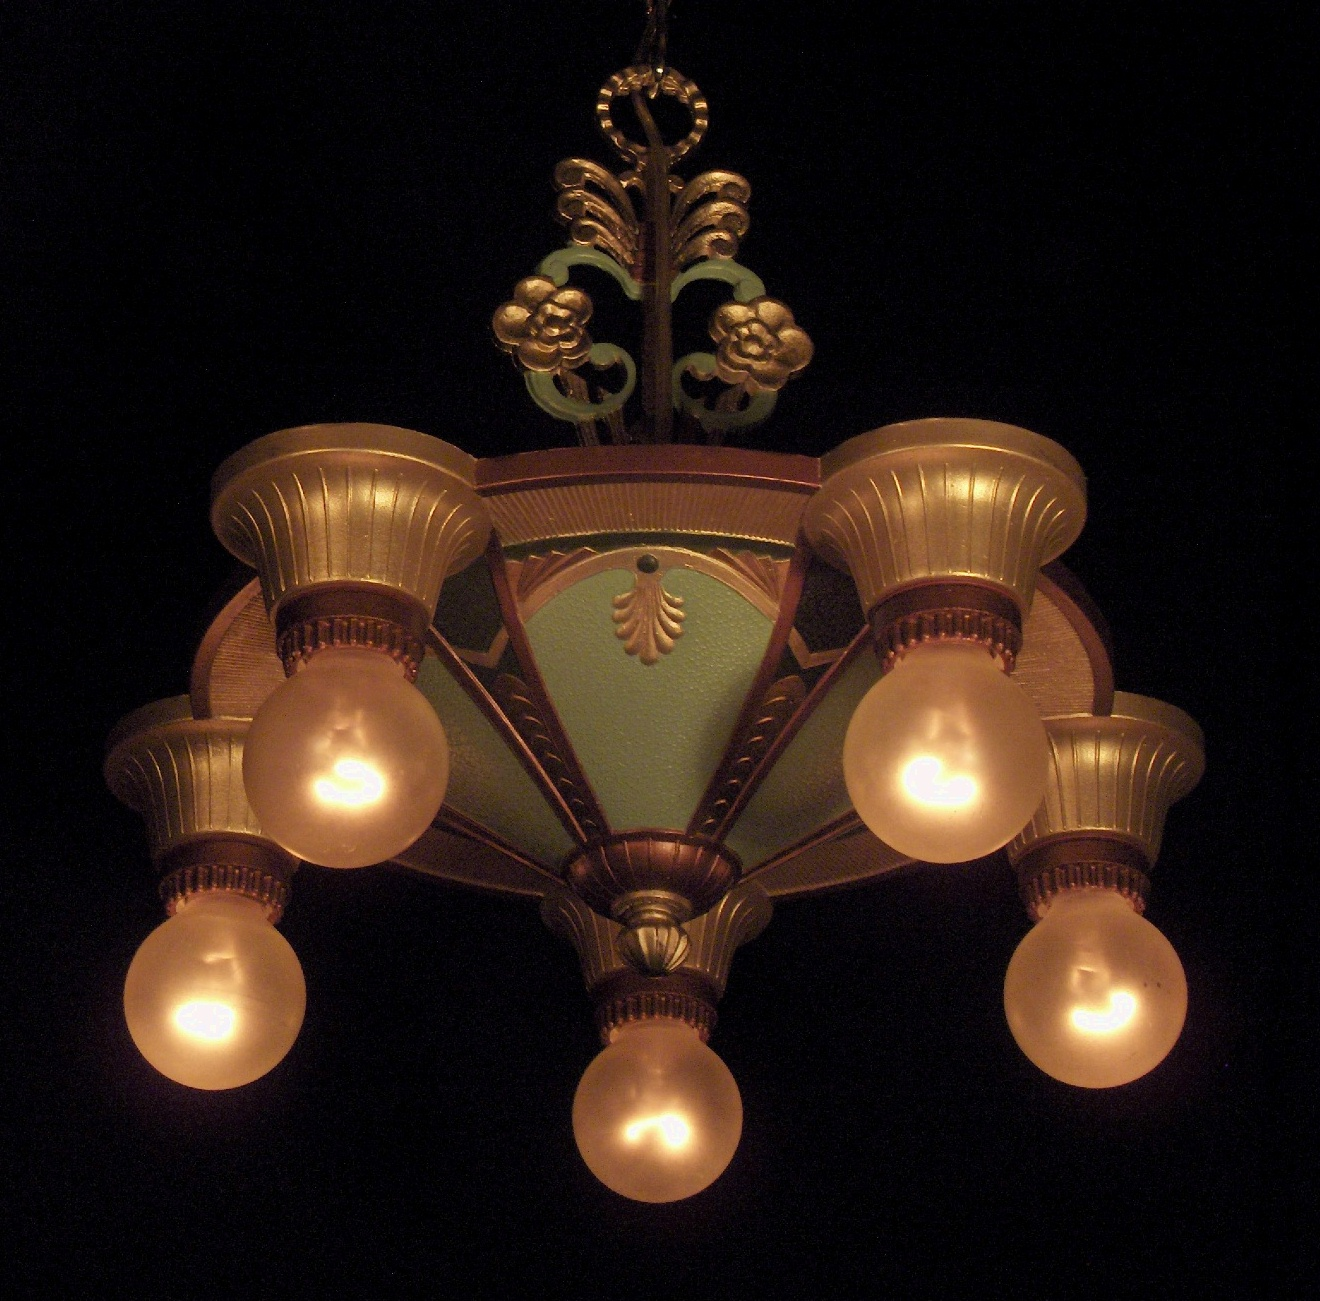 Get The Look Overscale Lighting: Love Boardwalk Empire? Get The Look At Vintage Lighting